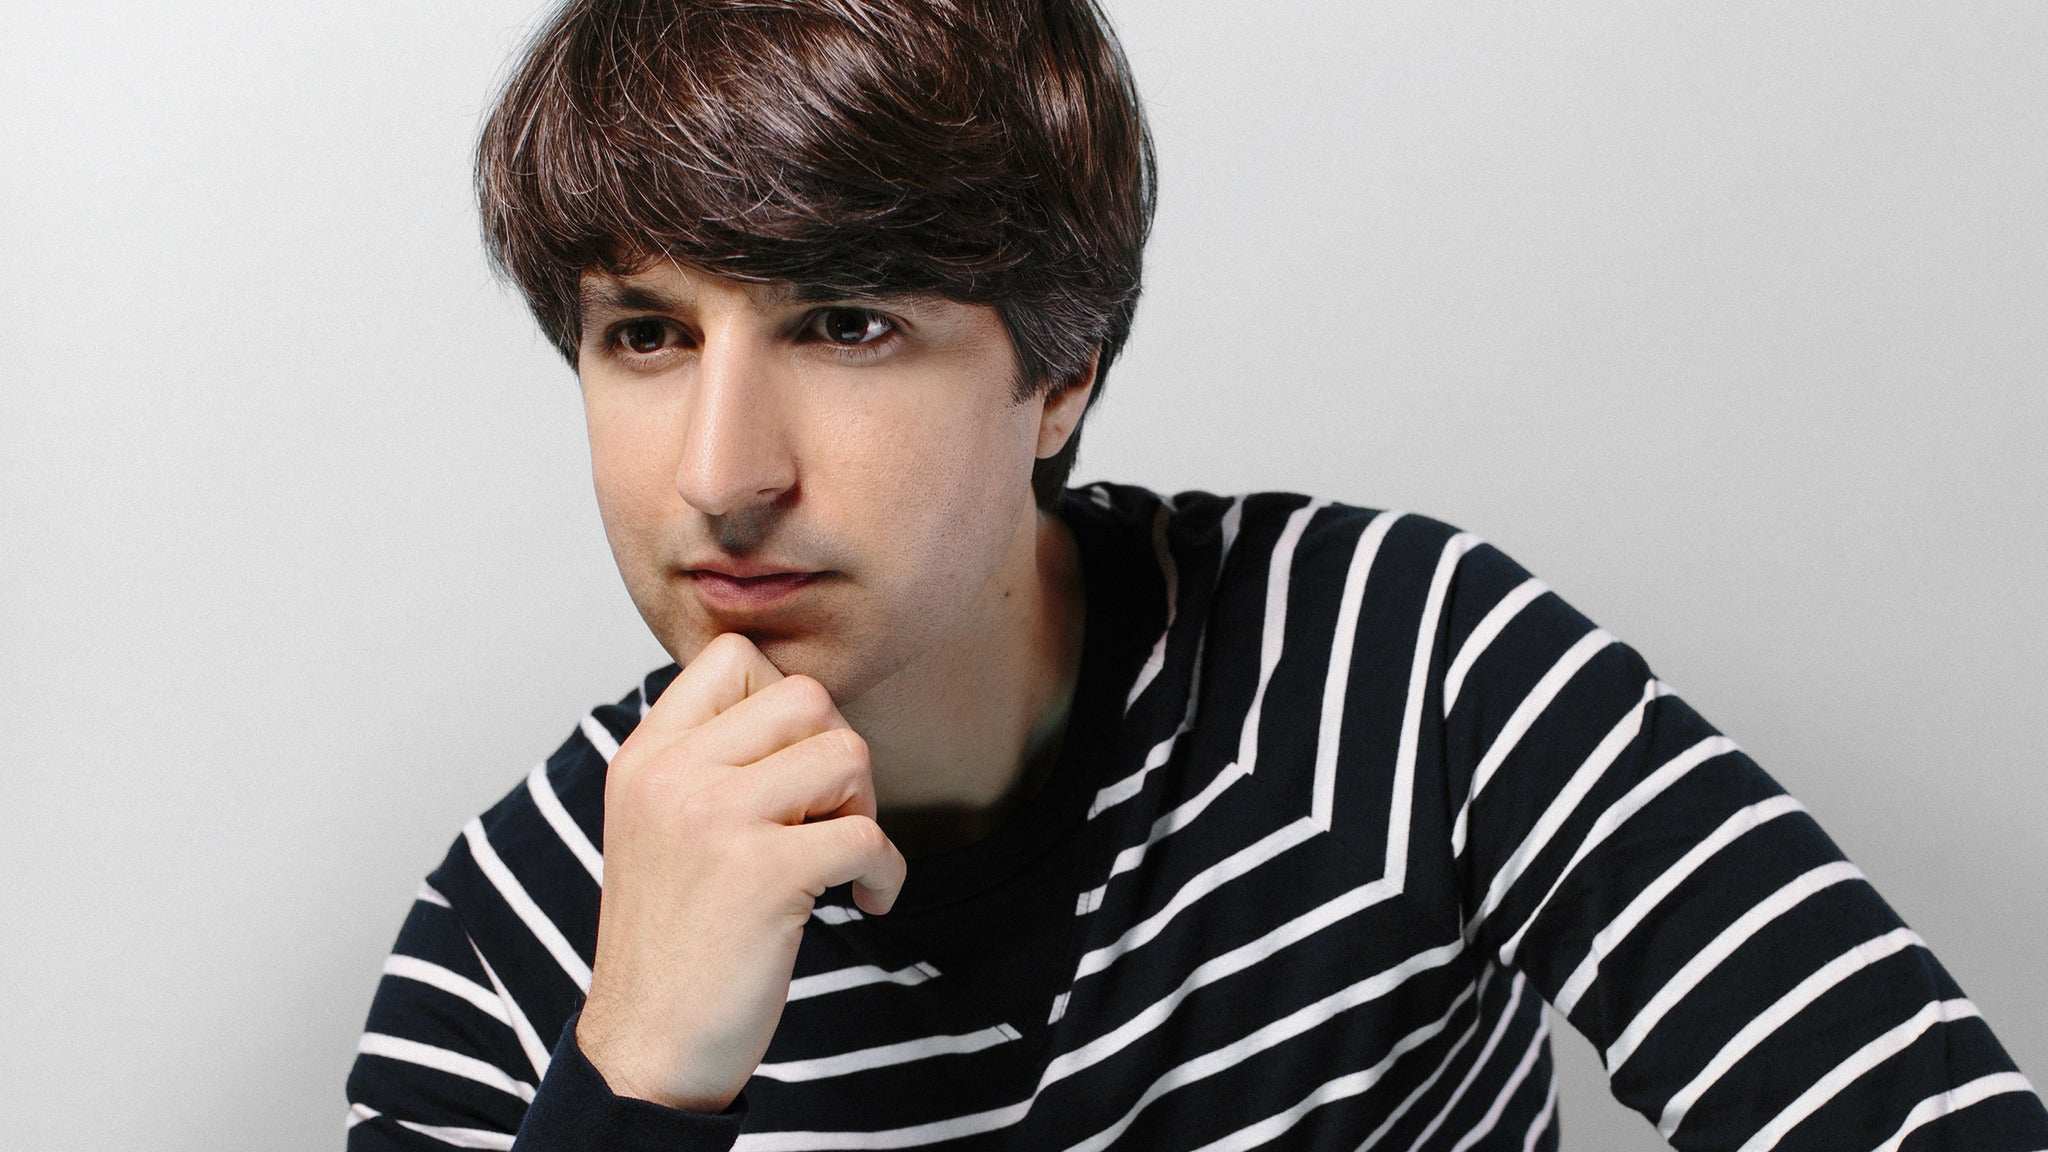 Demetri Martin - Wandering Mind Tour at Uptown Theater